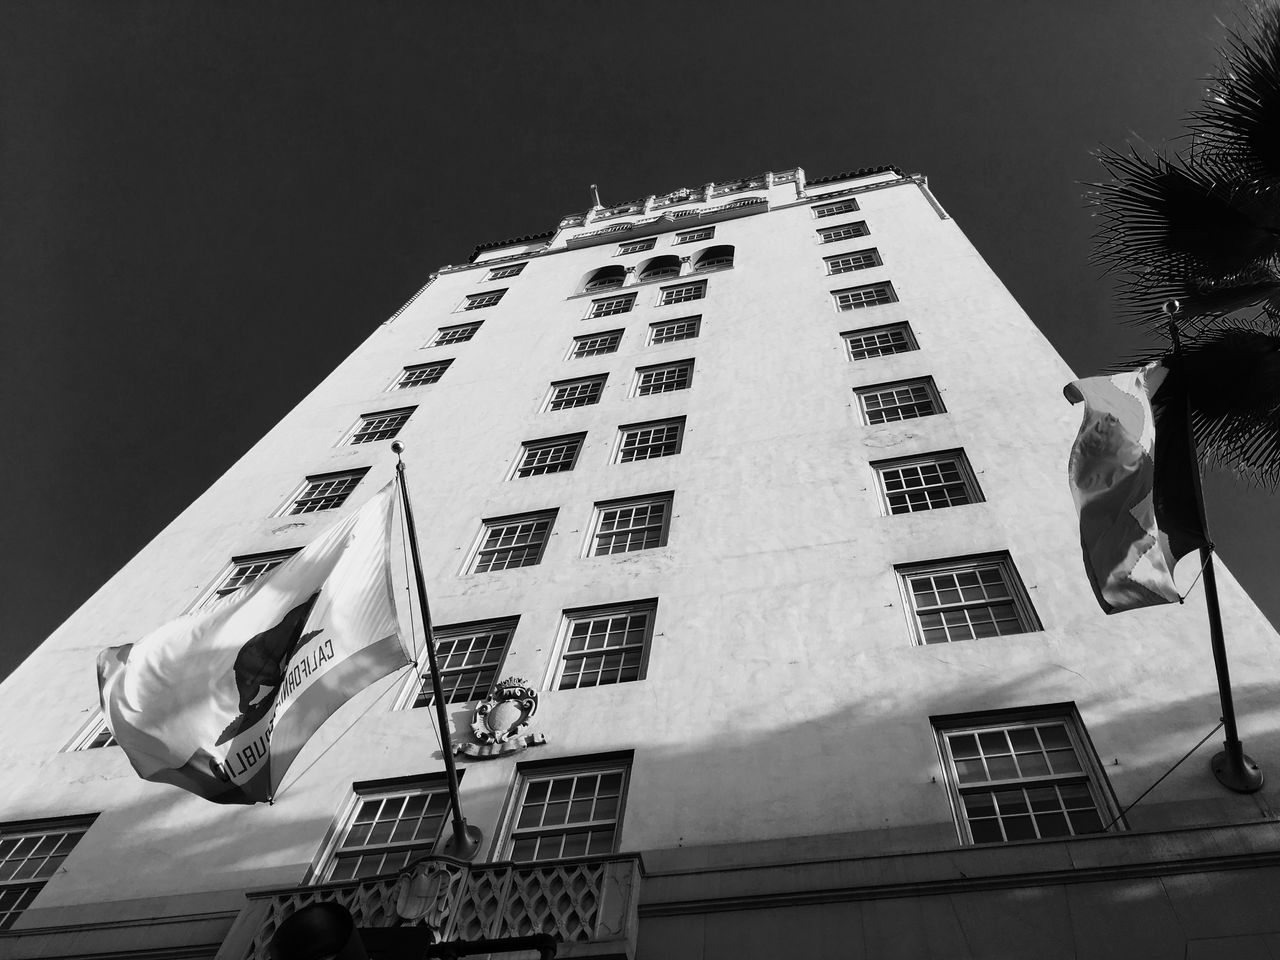 Roosevelt Hotel / Hollywood, California Architecture Building Exterior Built Structure Clear Sky Day Film Noir Hollywood Hollywood Boulevard Hotel Low Angle View Monochrome No People Outdoors Roosevelt Hotel, Los Angeles Sky